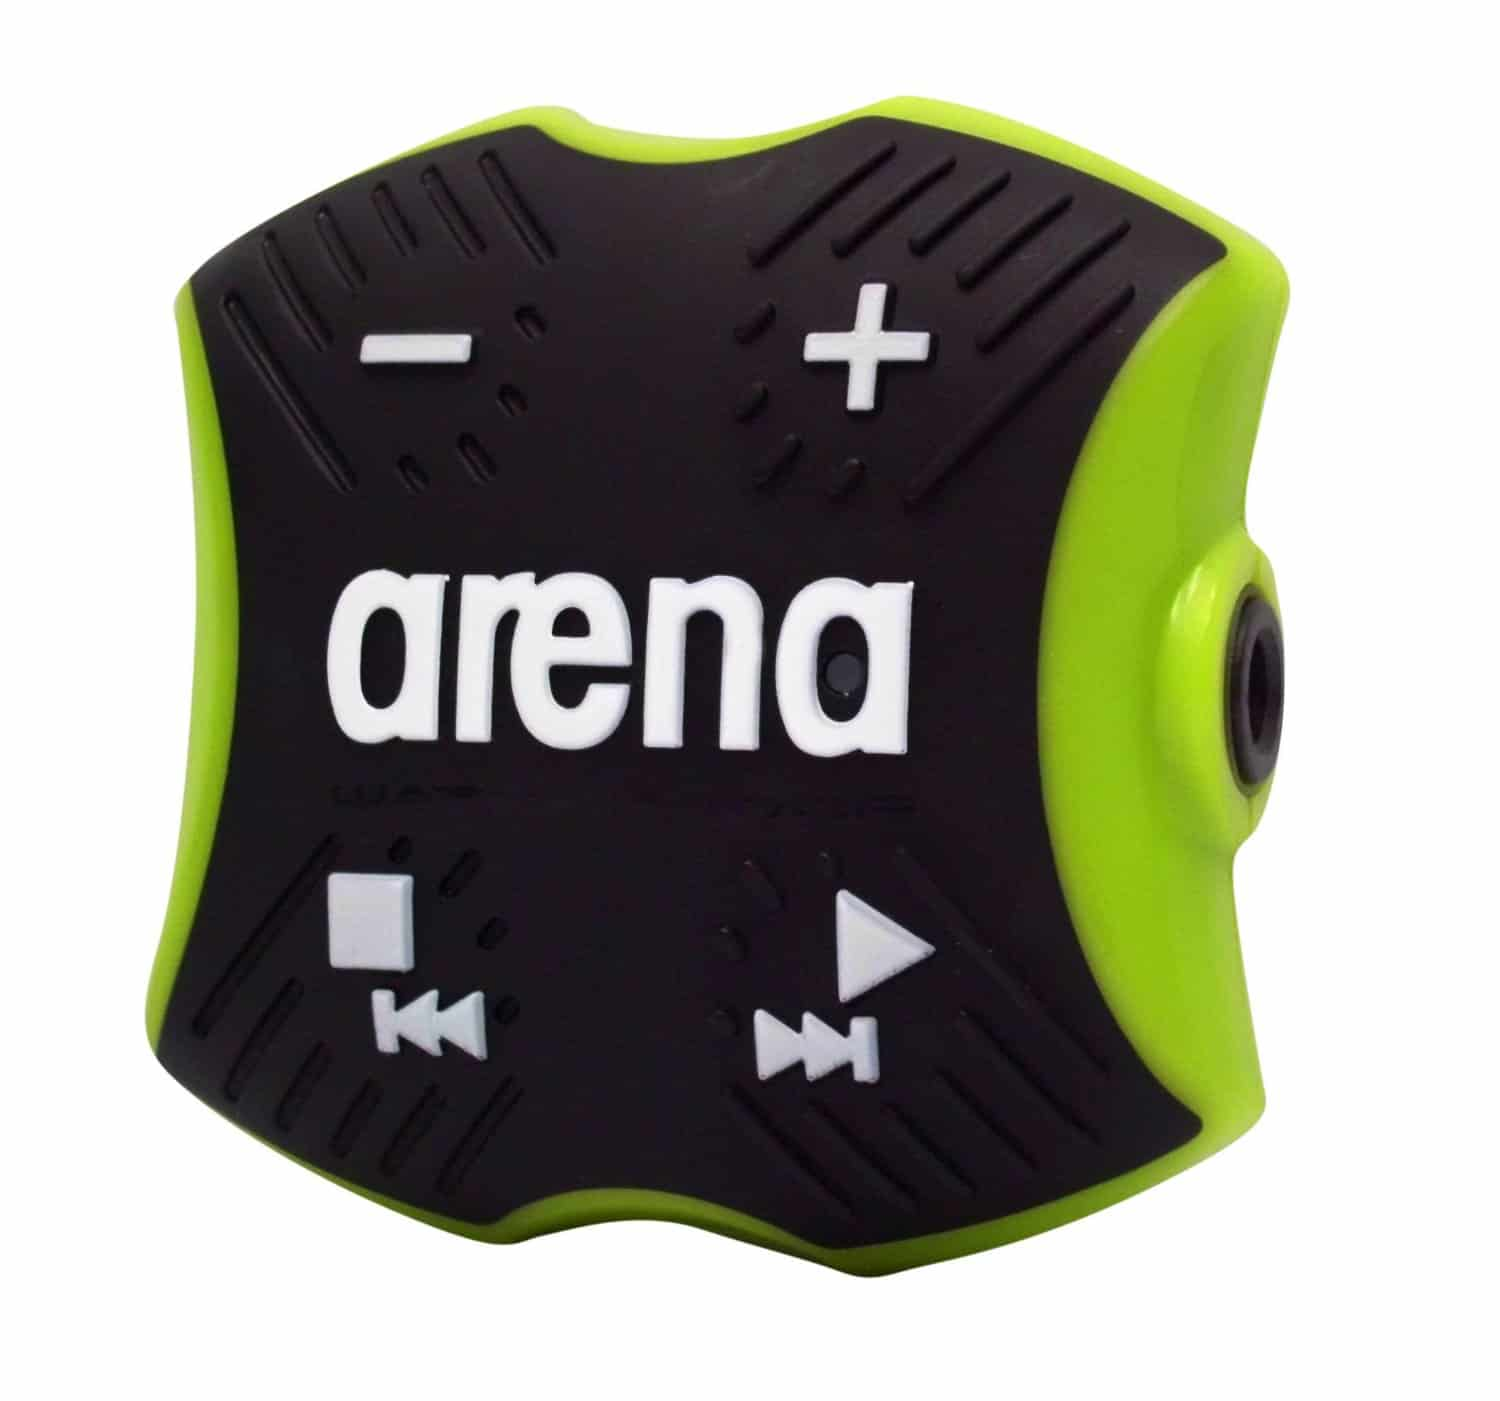 Arena Underwater MP3 Player Review